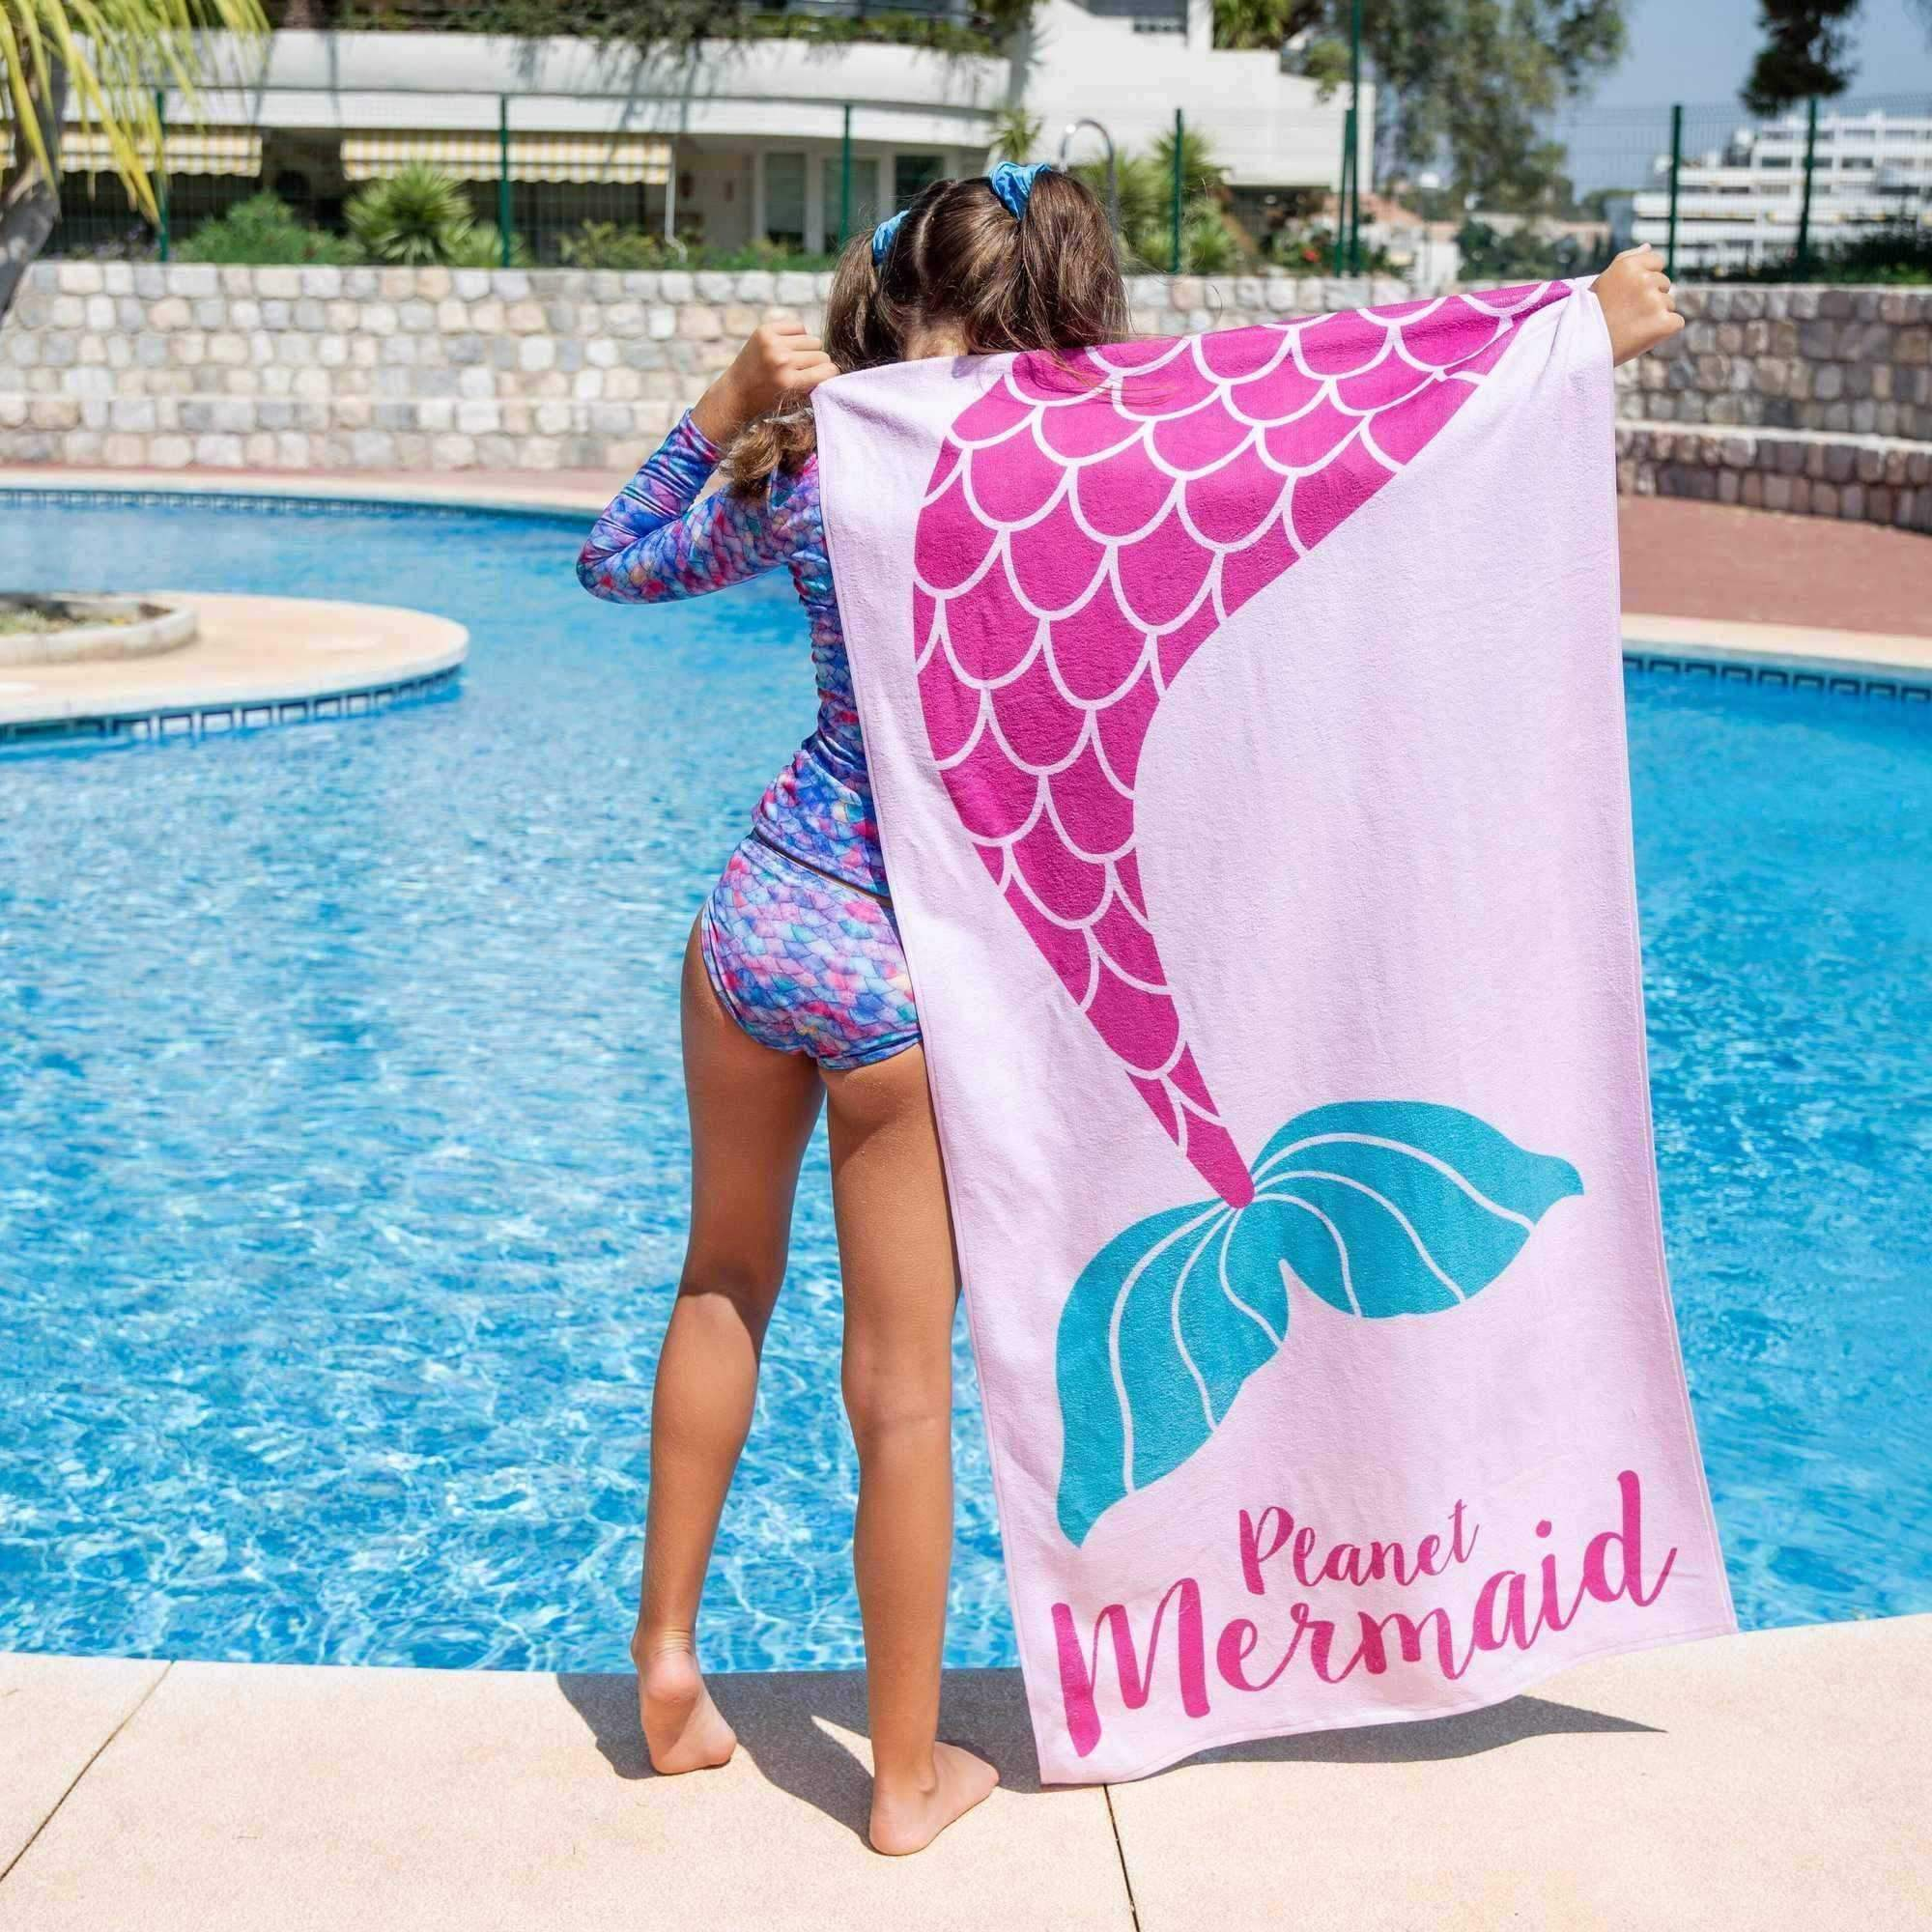 Planet Mermaid Towel featuring a Mermaid Tail. 100% Cotton swimming pool or beach towel